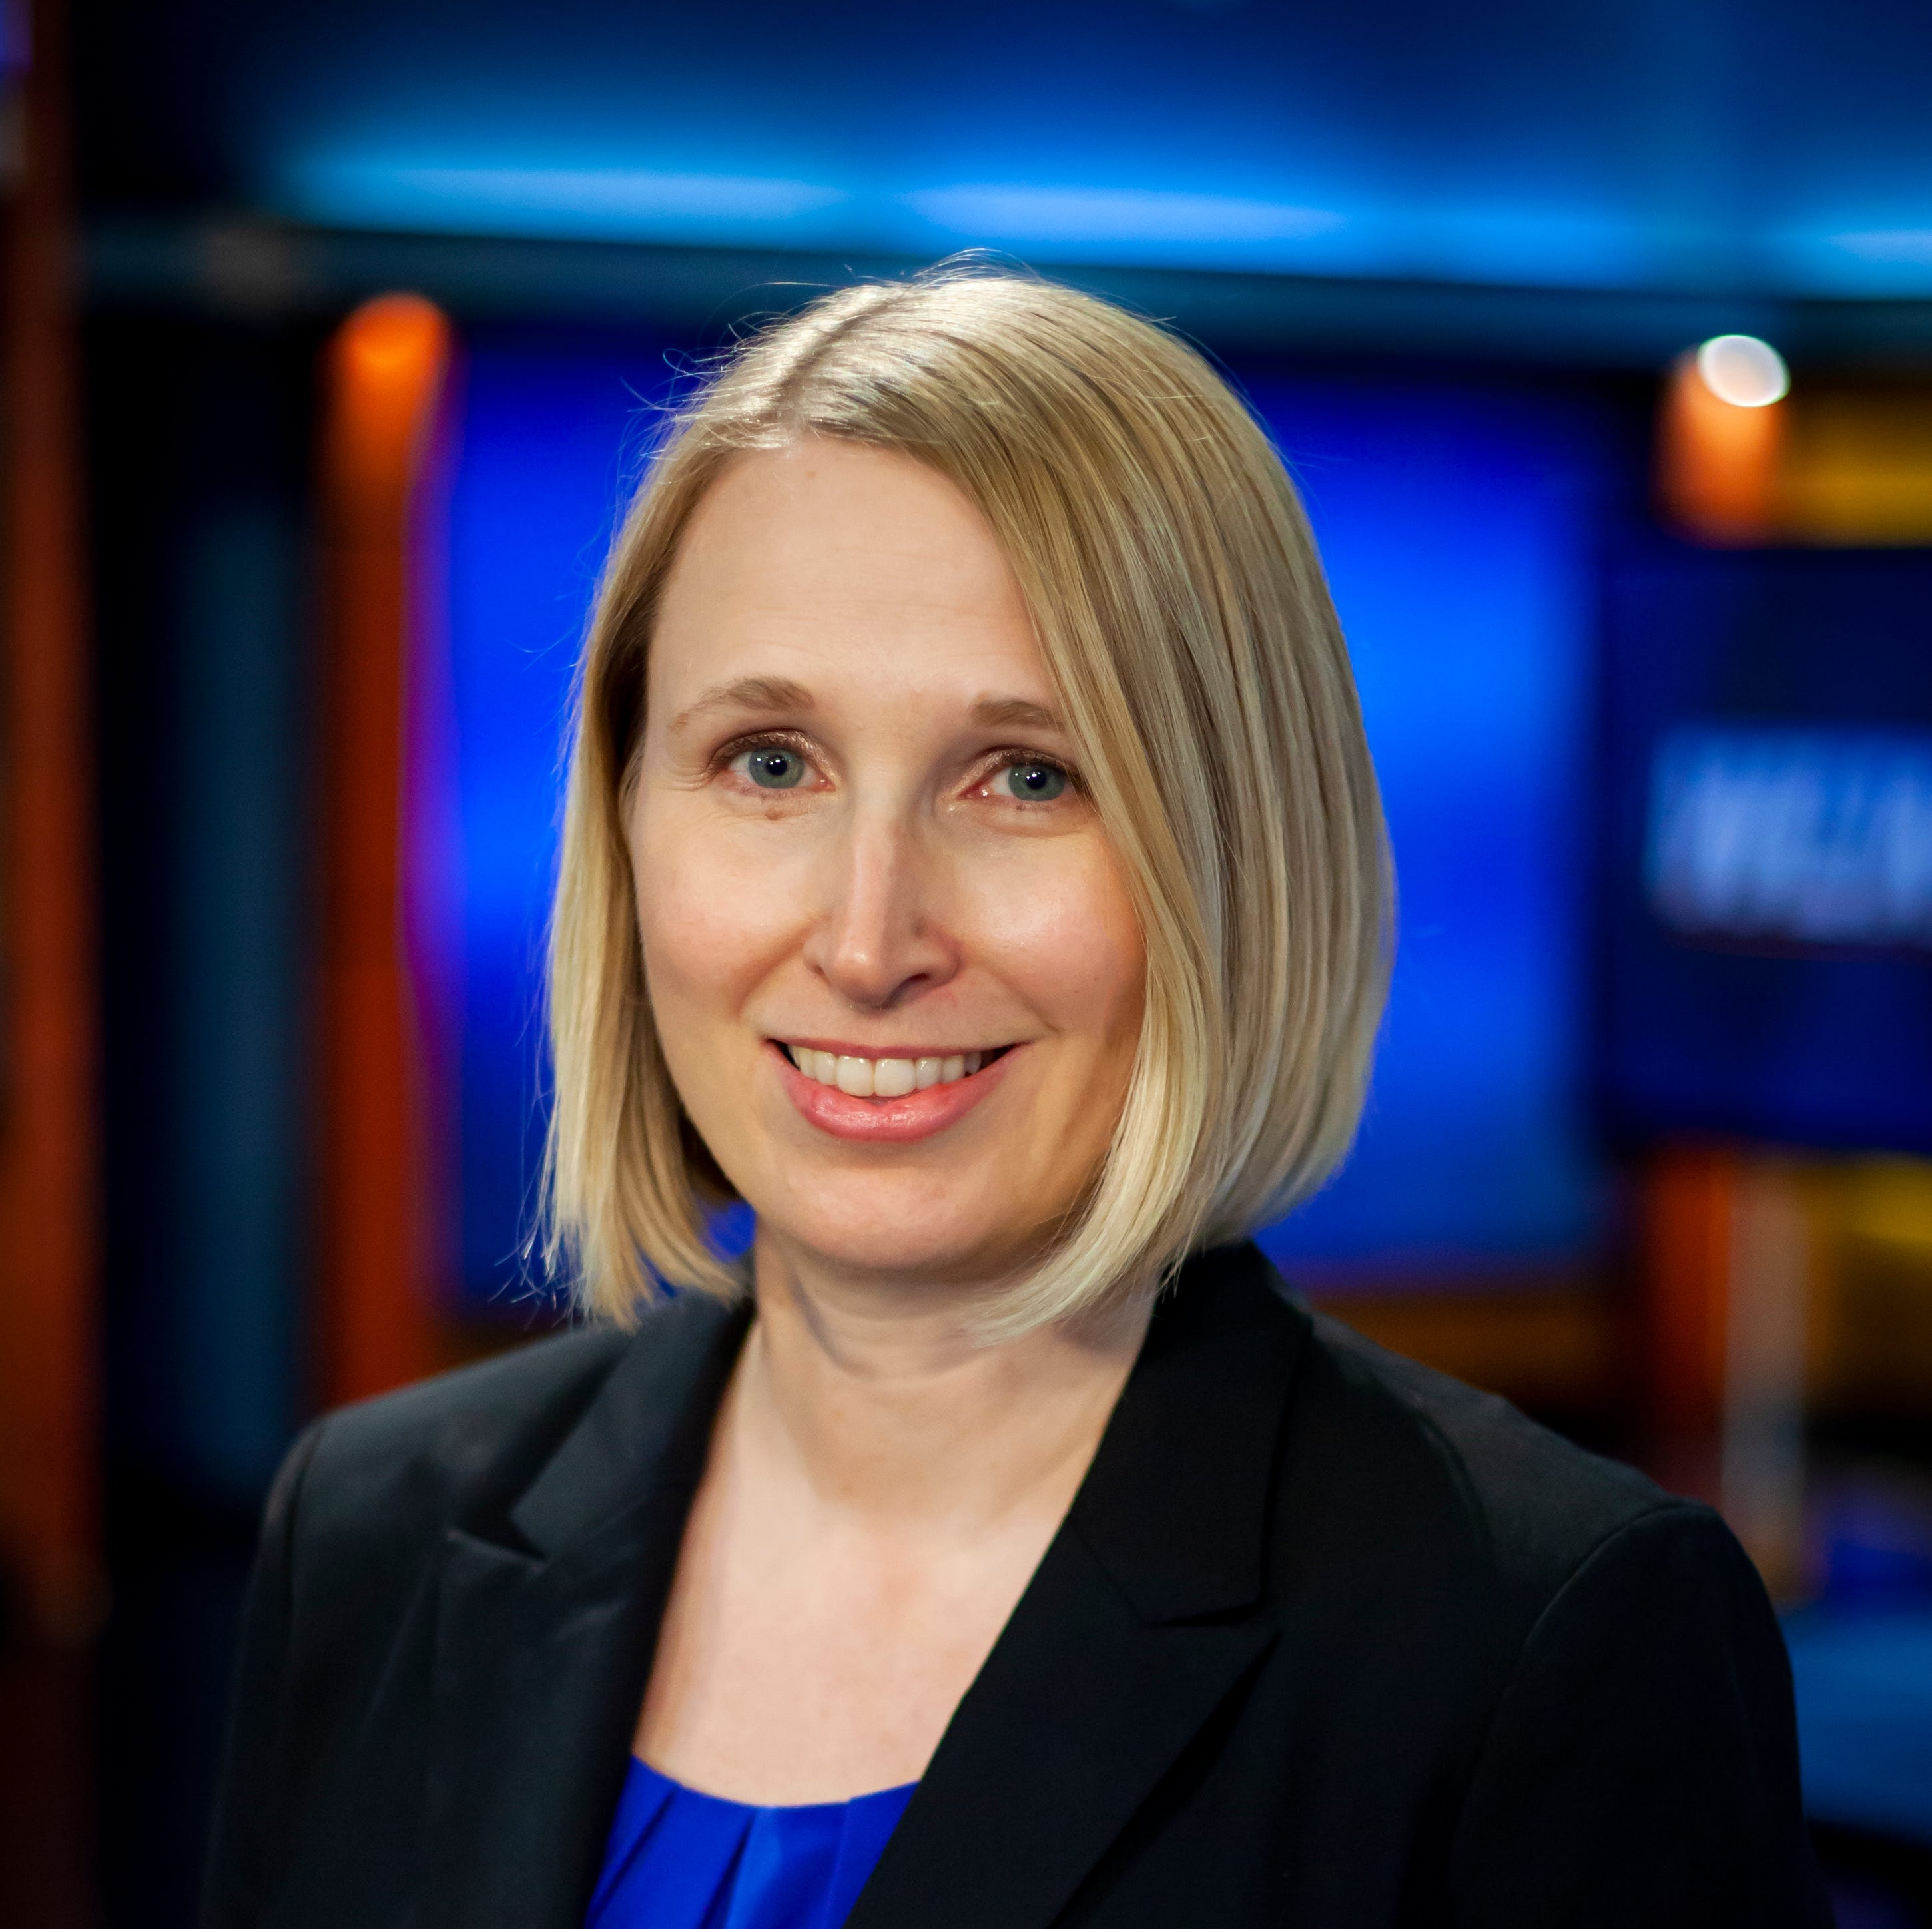 KCCI hires Drake alumna Allison Smith as its news director, replacing retiring Dave Busiek